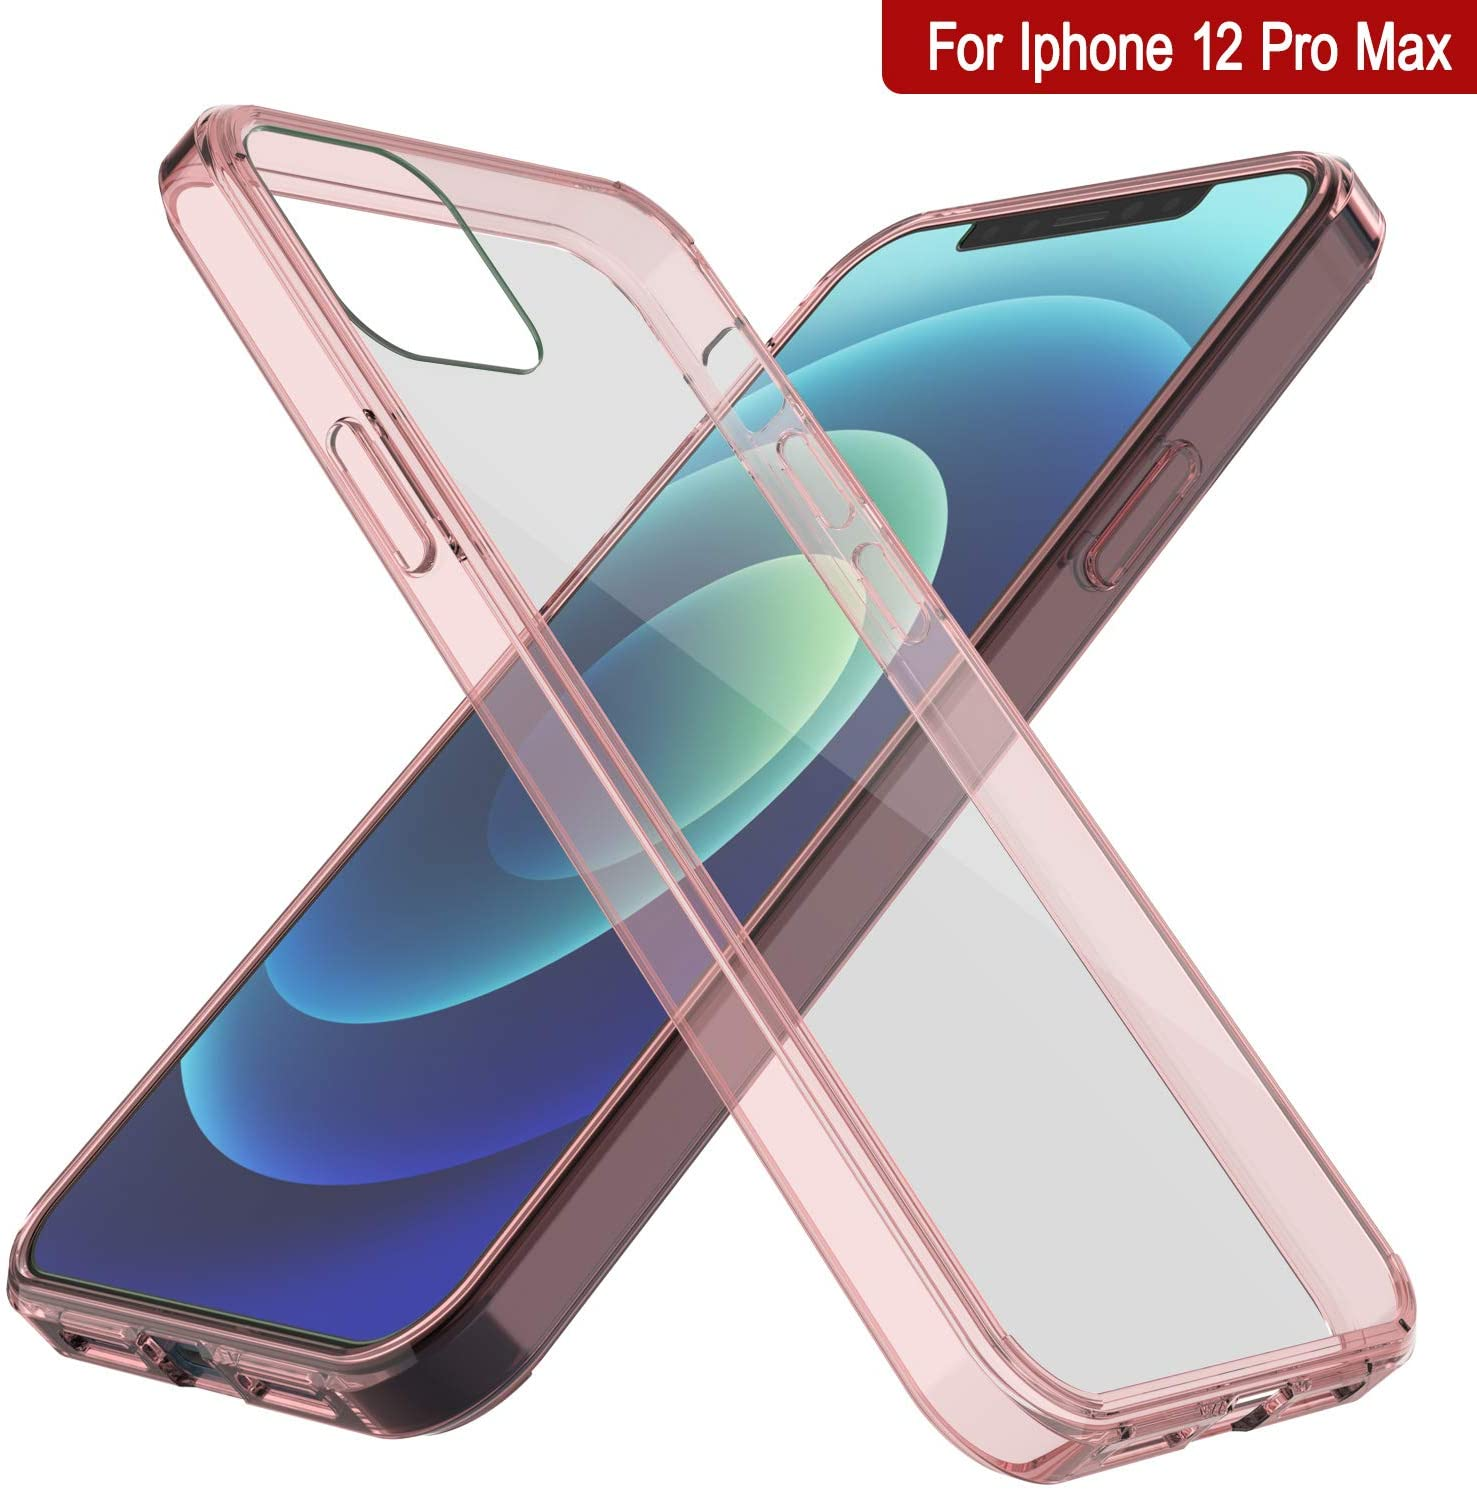 iPhone 12 Pro Max Case Punkcase® LUCID 2.0 Crystal Pink Series w/ PUNK SHIELD Screen Protector | Ultra Fit